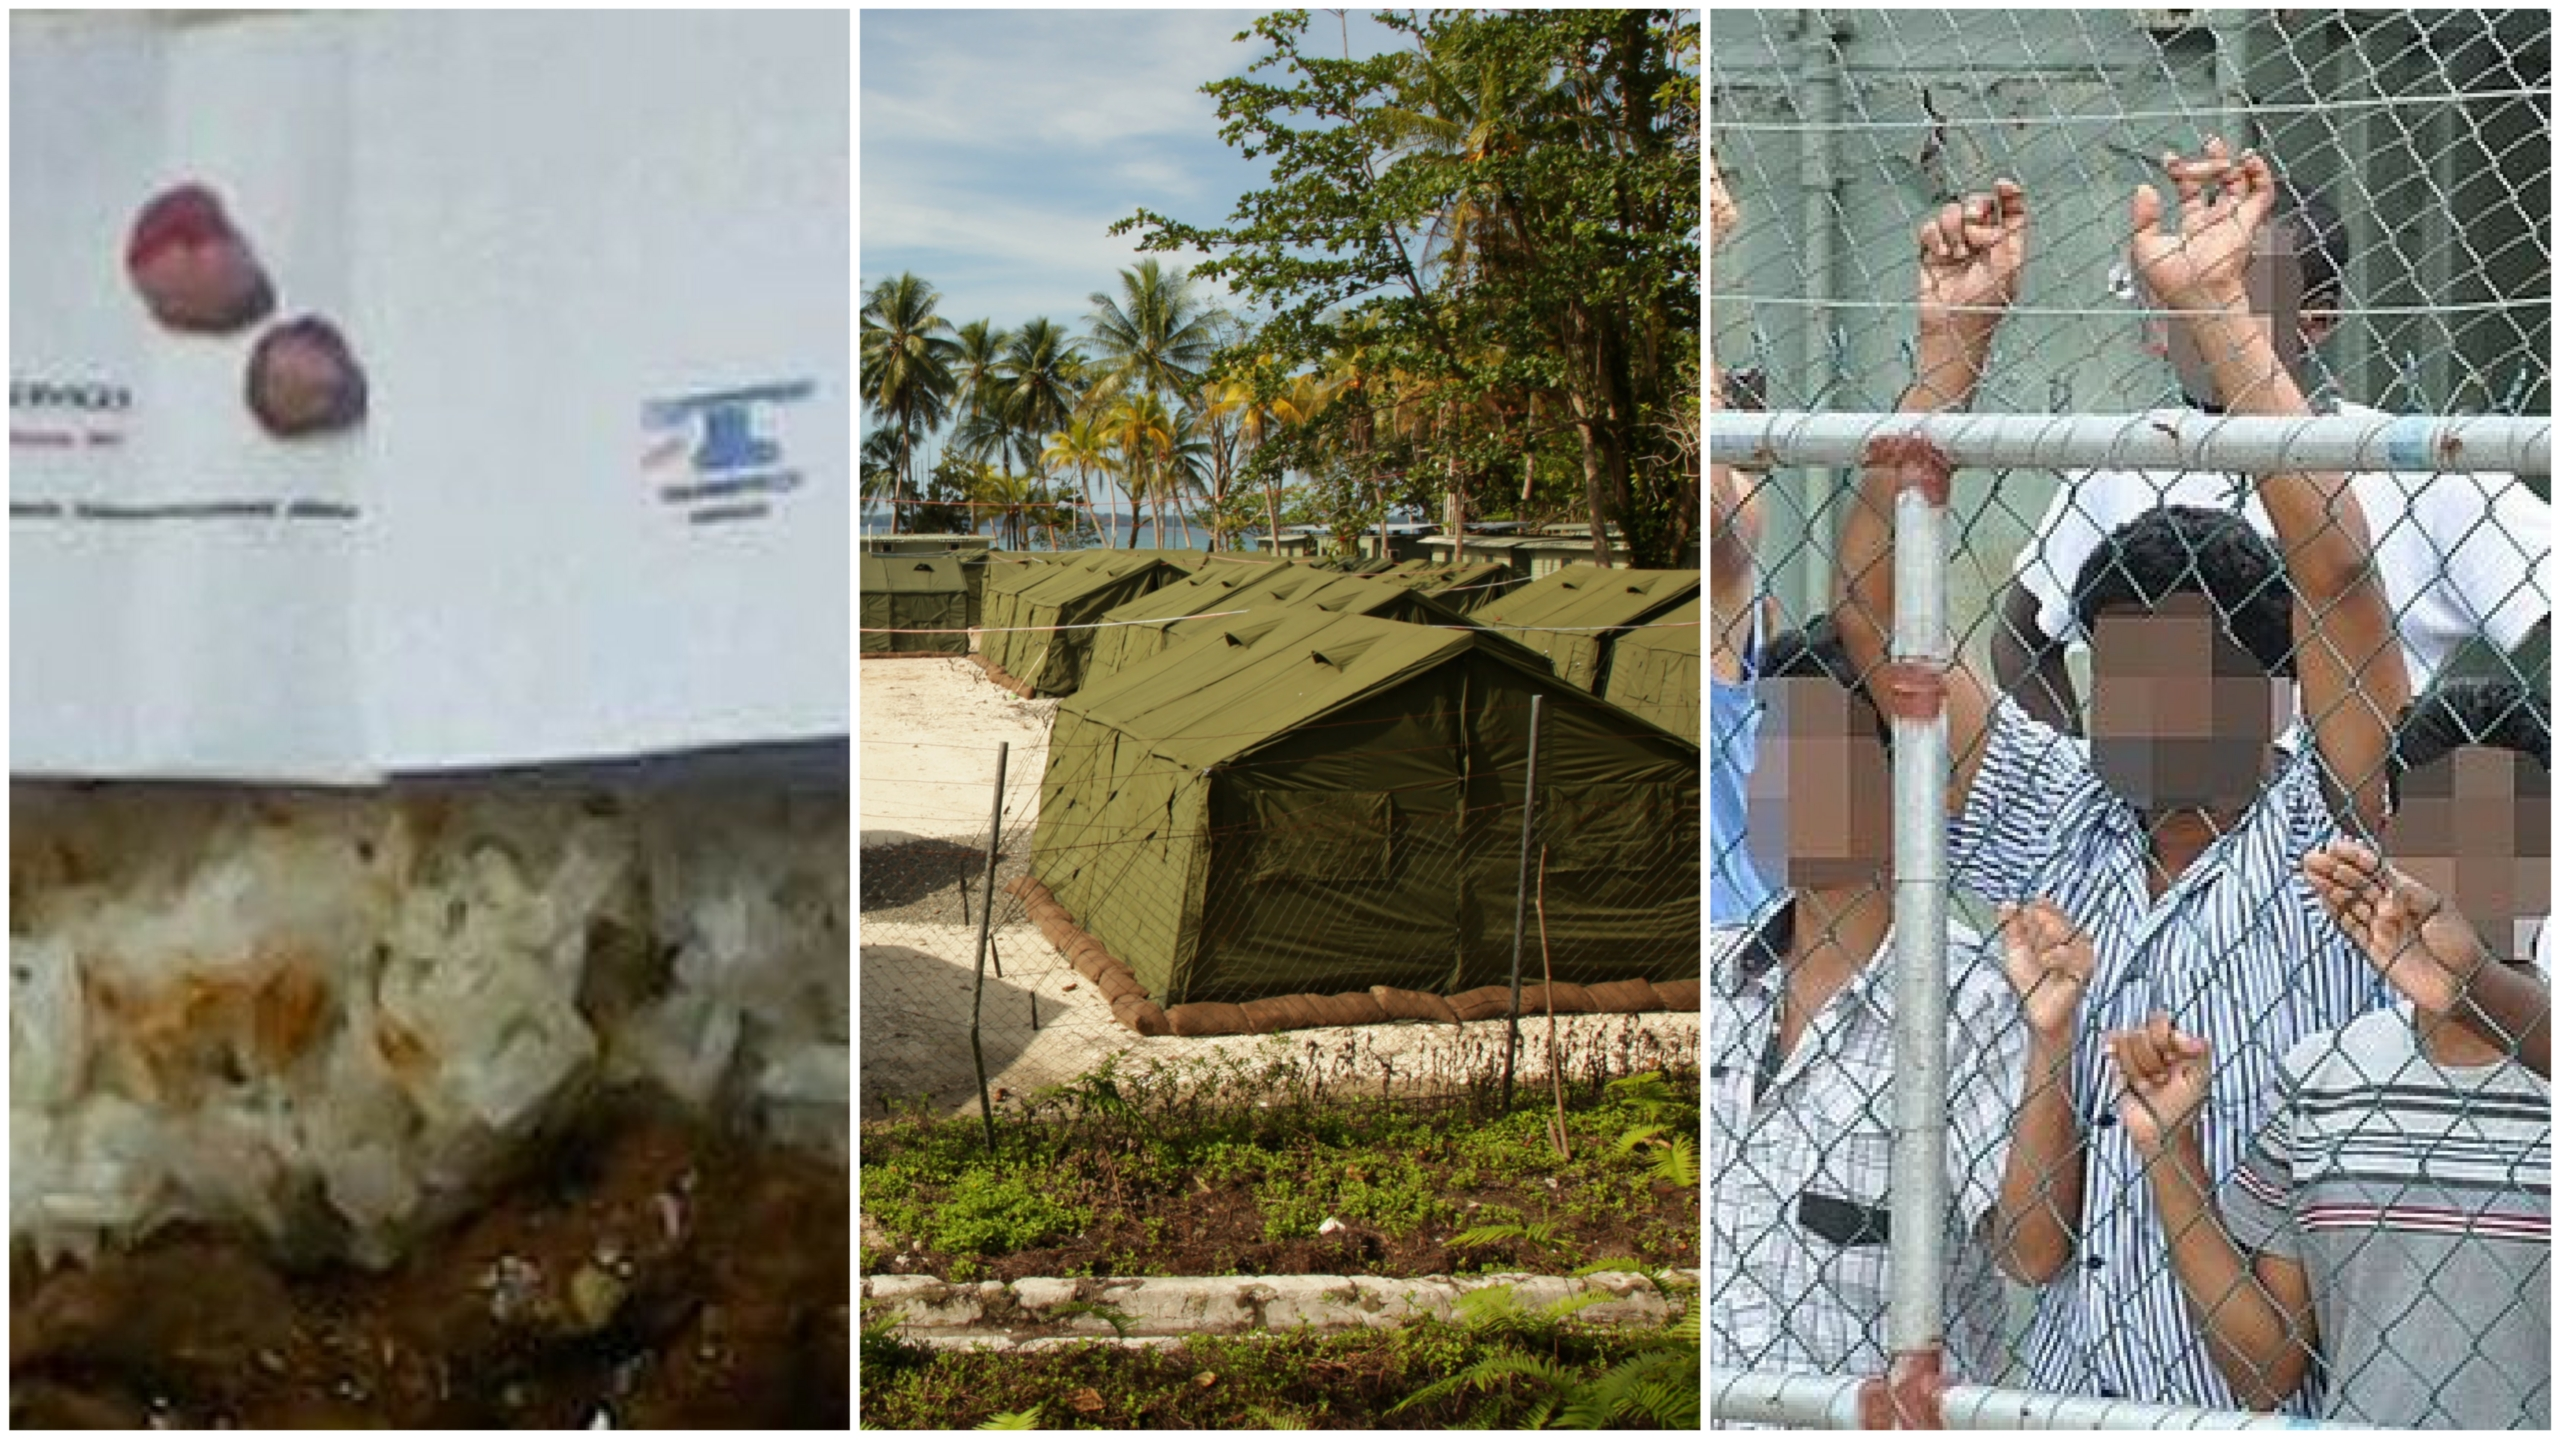 My letter to Manus Island: The truth about Australians